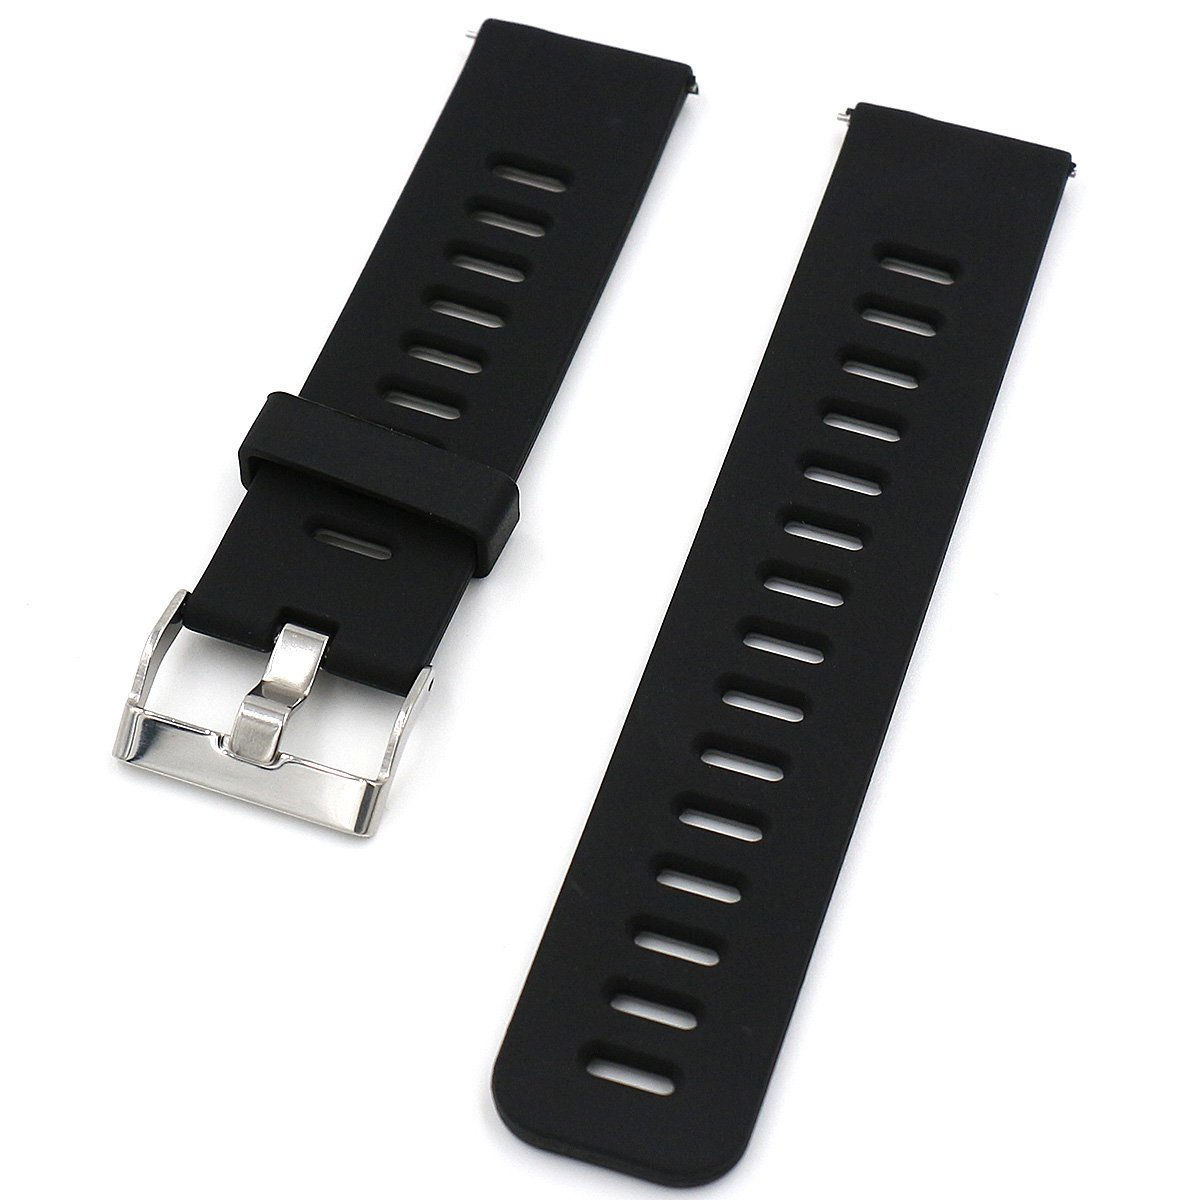 YANRAN 22mm Watch Band Strap Replacement Bracelet Silicone Watchband Straps for Samsung Gear 2 Samsung Gear S3 Pebble Time Moto 360 2nd 46mm LG G ...